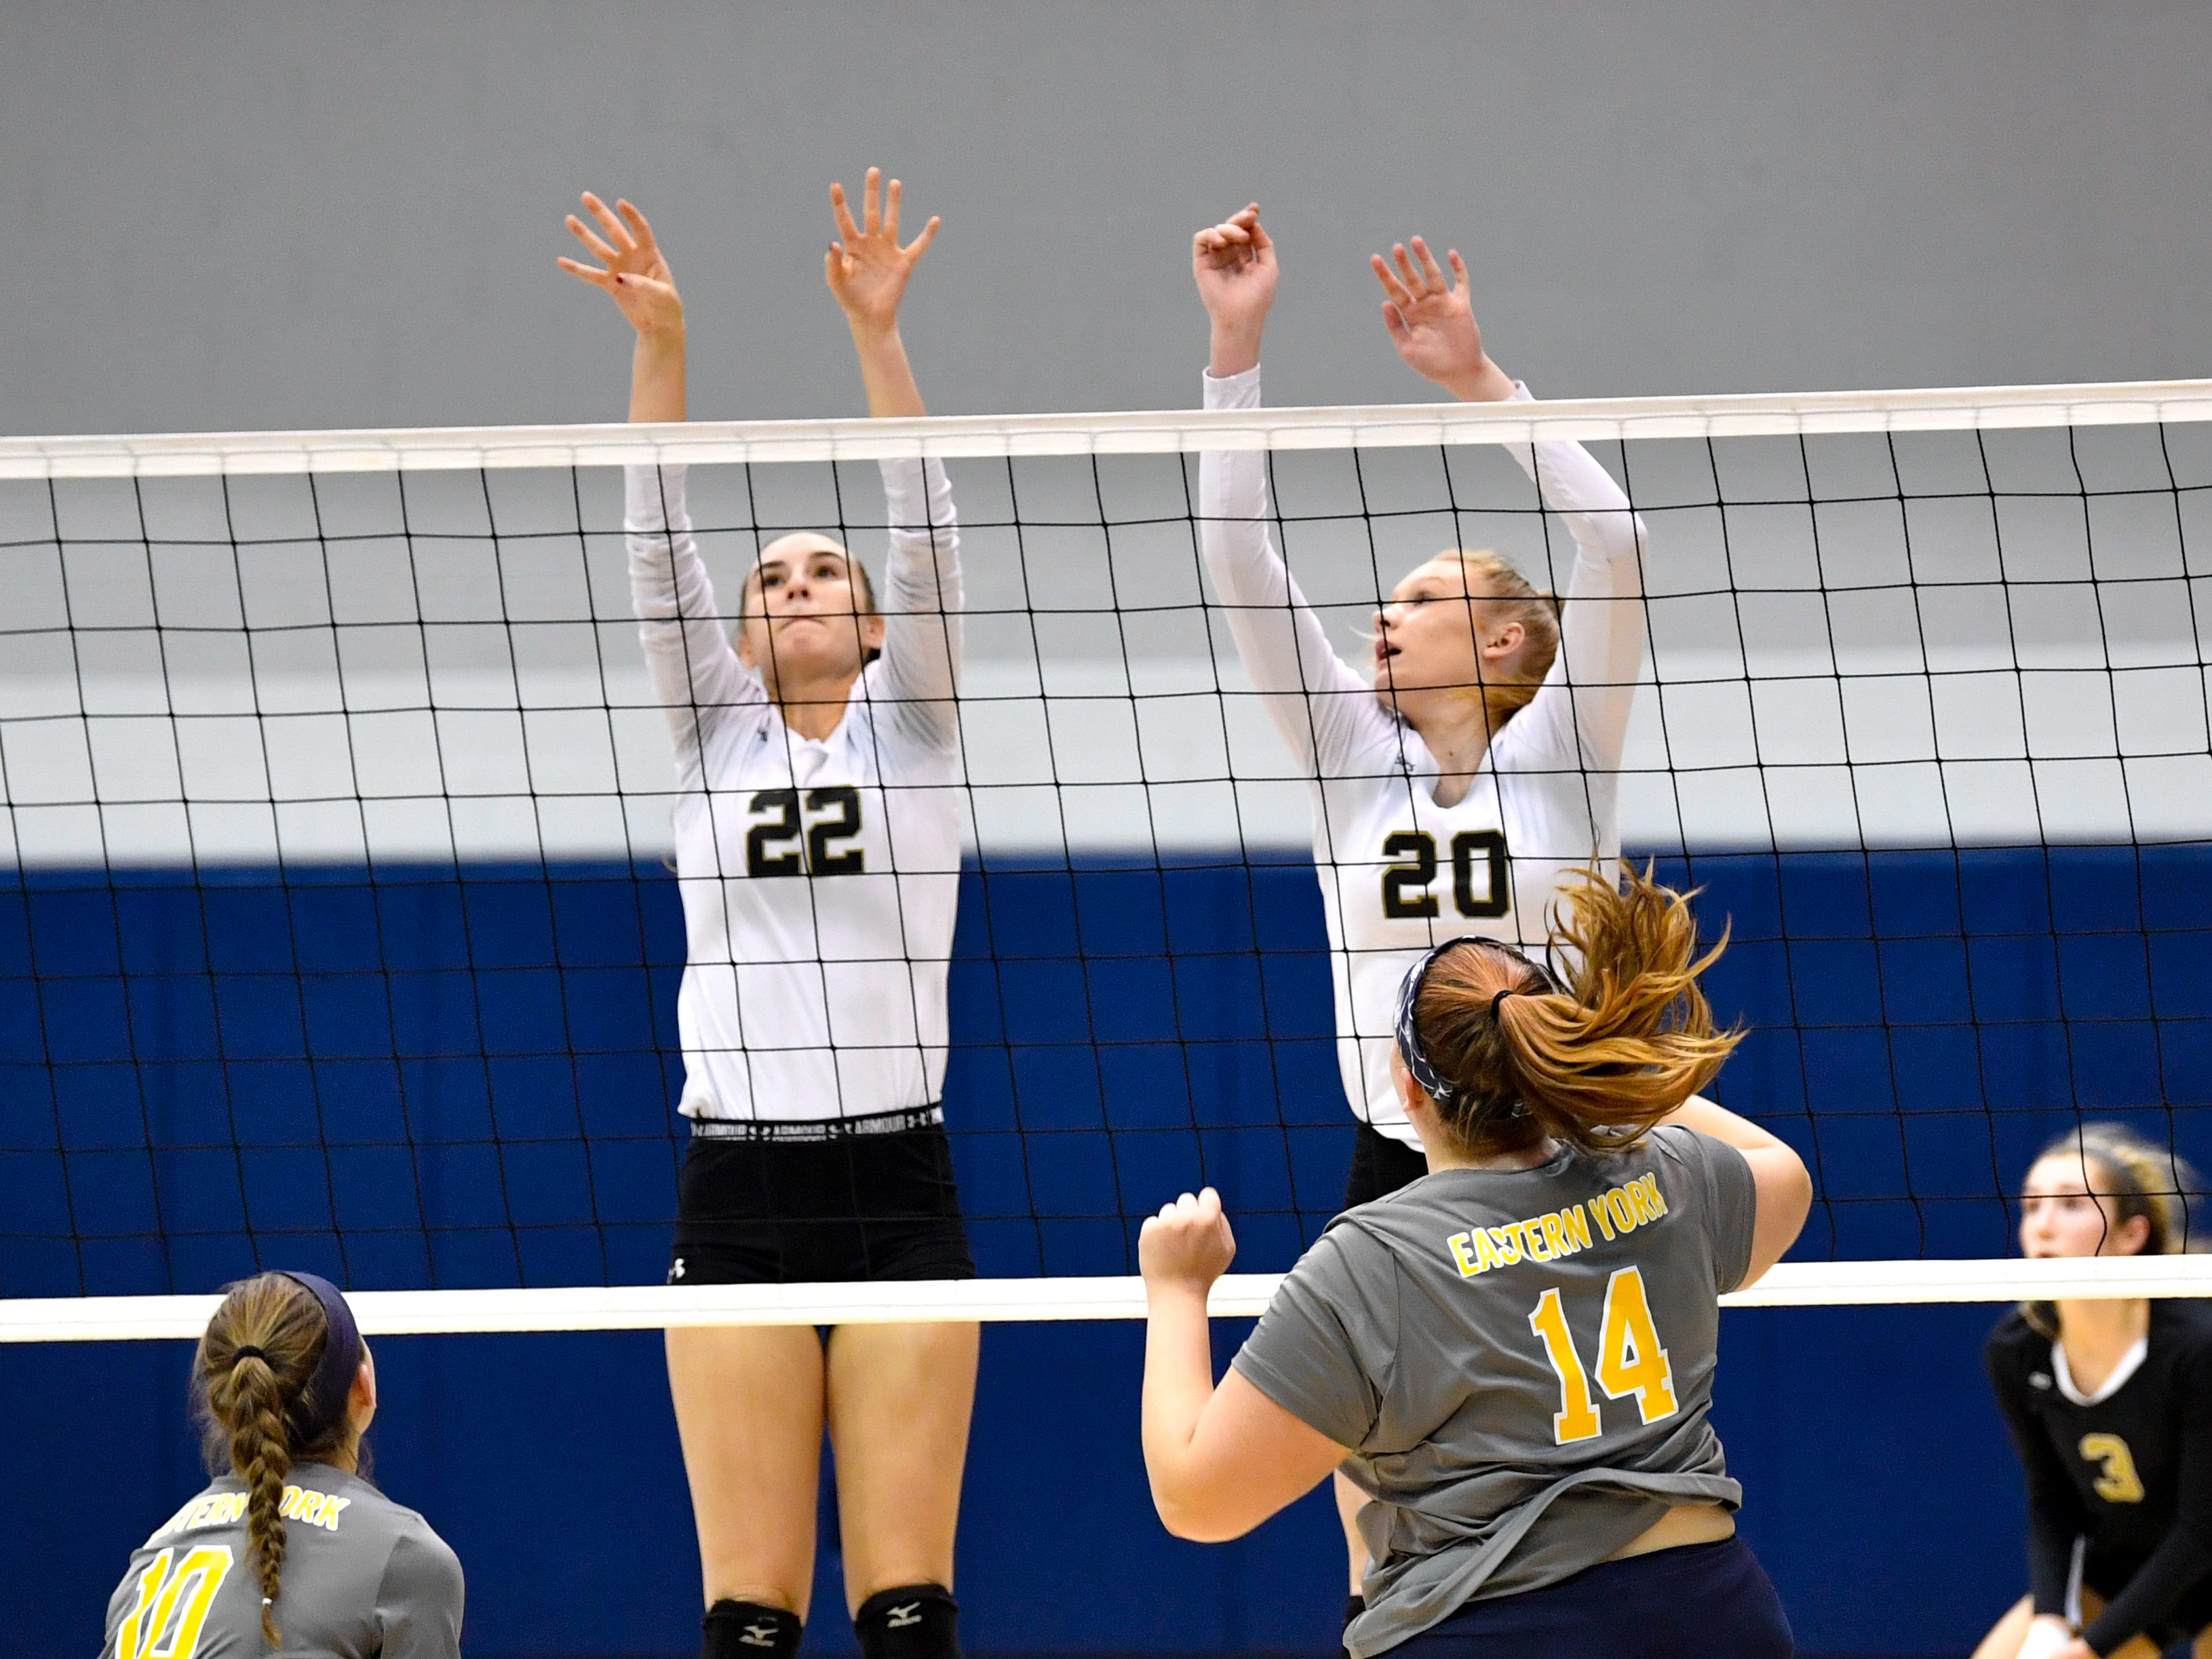 Delone Catholic's Emily Miller (22) and Brooke Lawyer (20) deflect the ball during the YAIAA league volleyball tournament semifinals between Eastern York and Delone Catholic, Tuesday, October 23, 2018. The Squirettes defeated the Golden Knights 3-2.